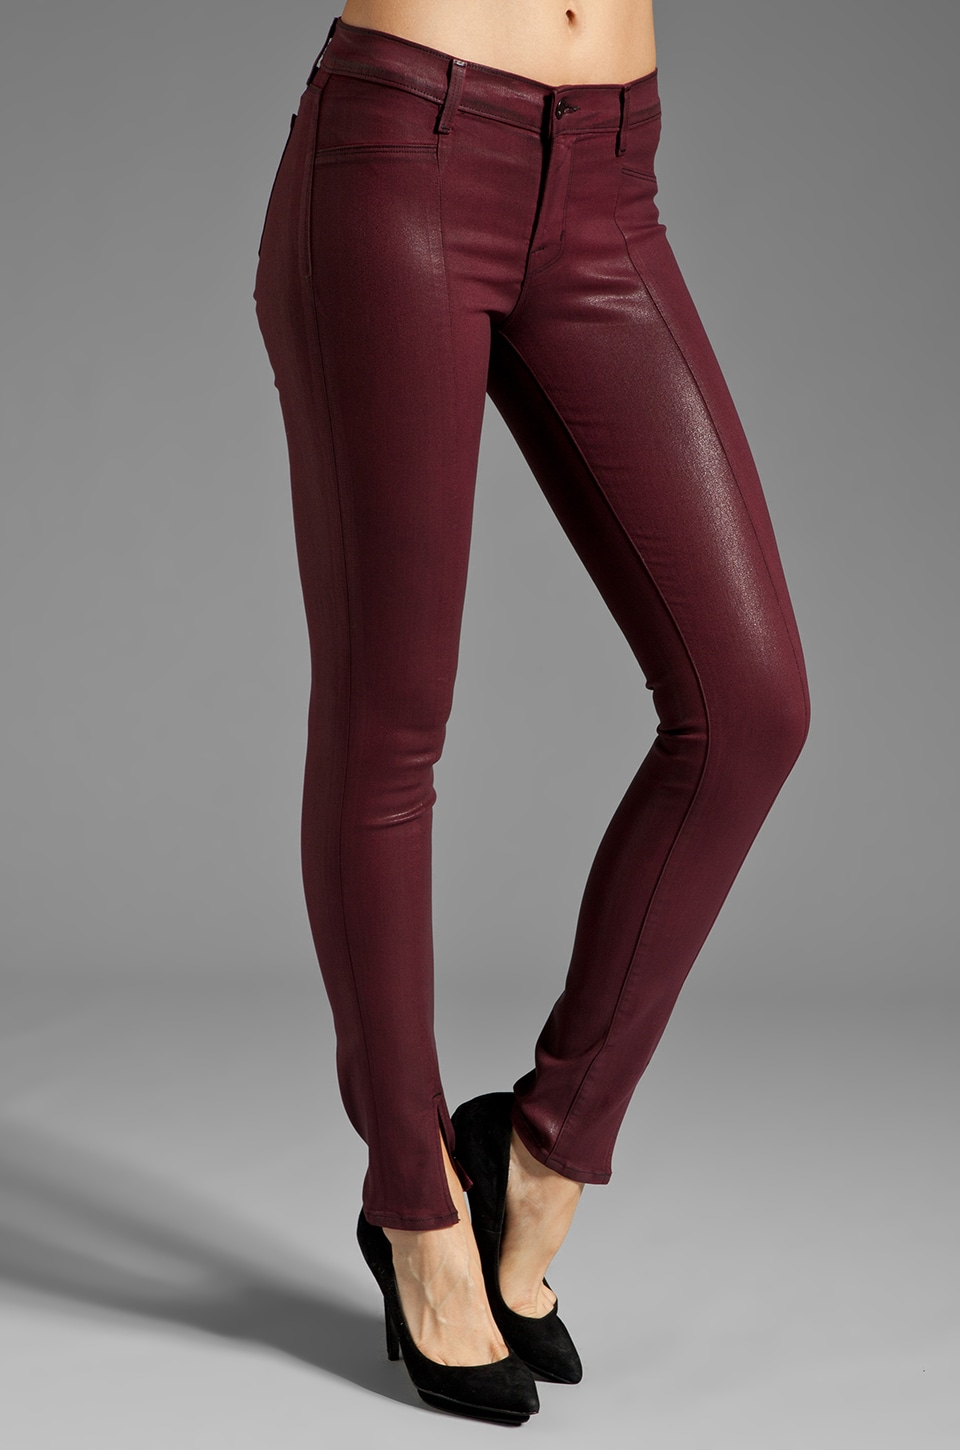 J Brand Vera Mid Rise Skinny in Coated Burgundy